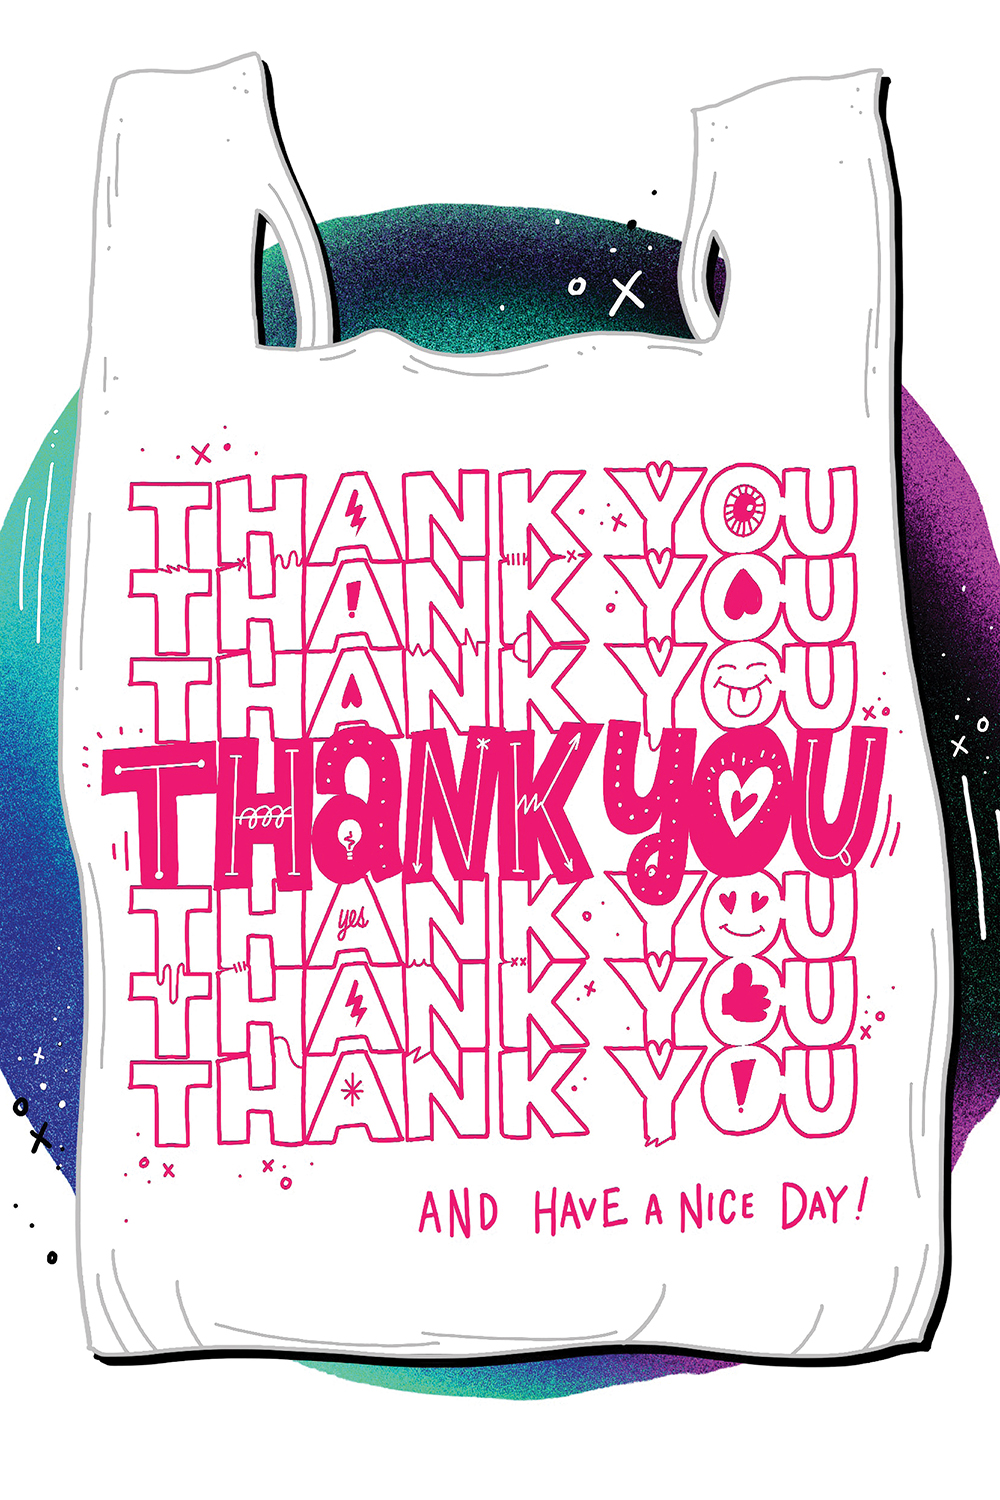 white plastic shopping bag art print saying thank you and have a nice day!